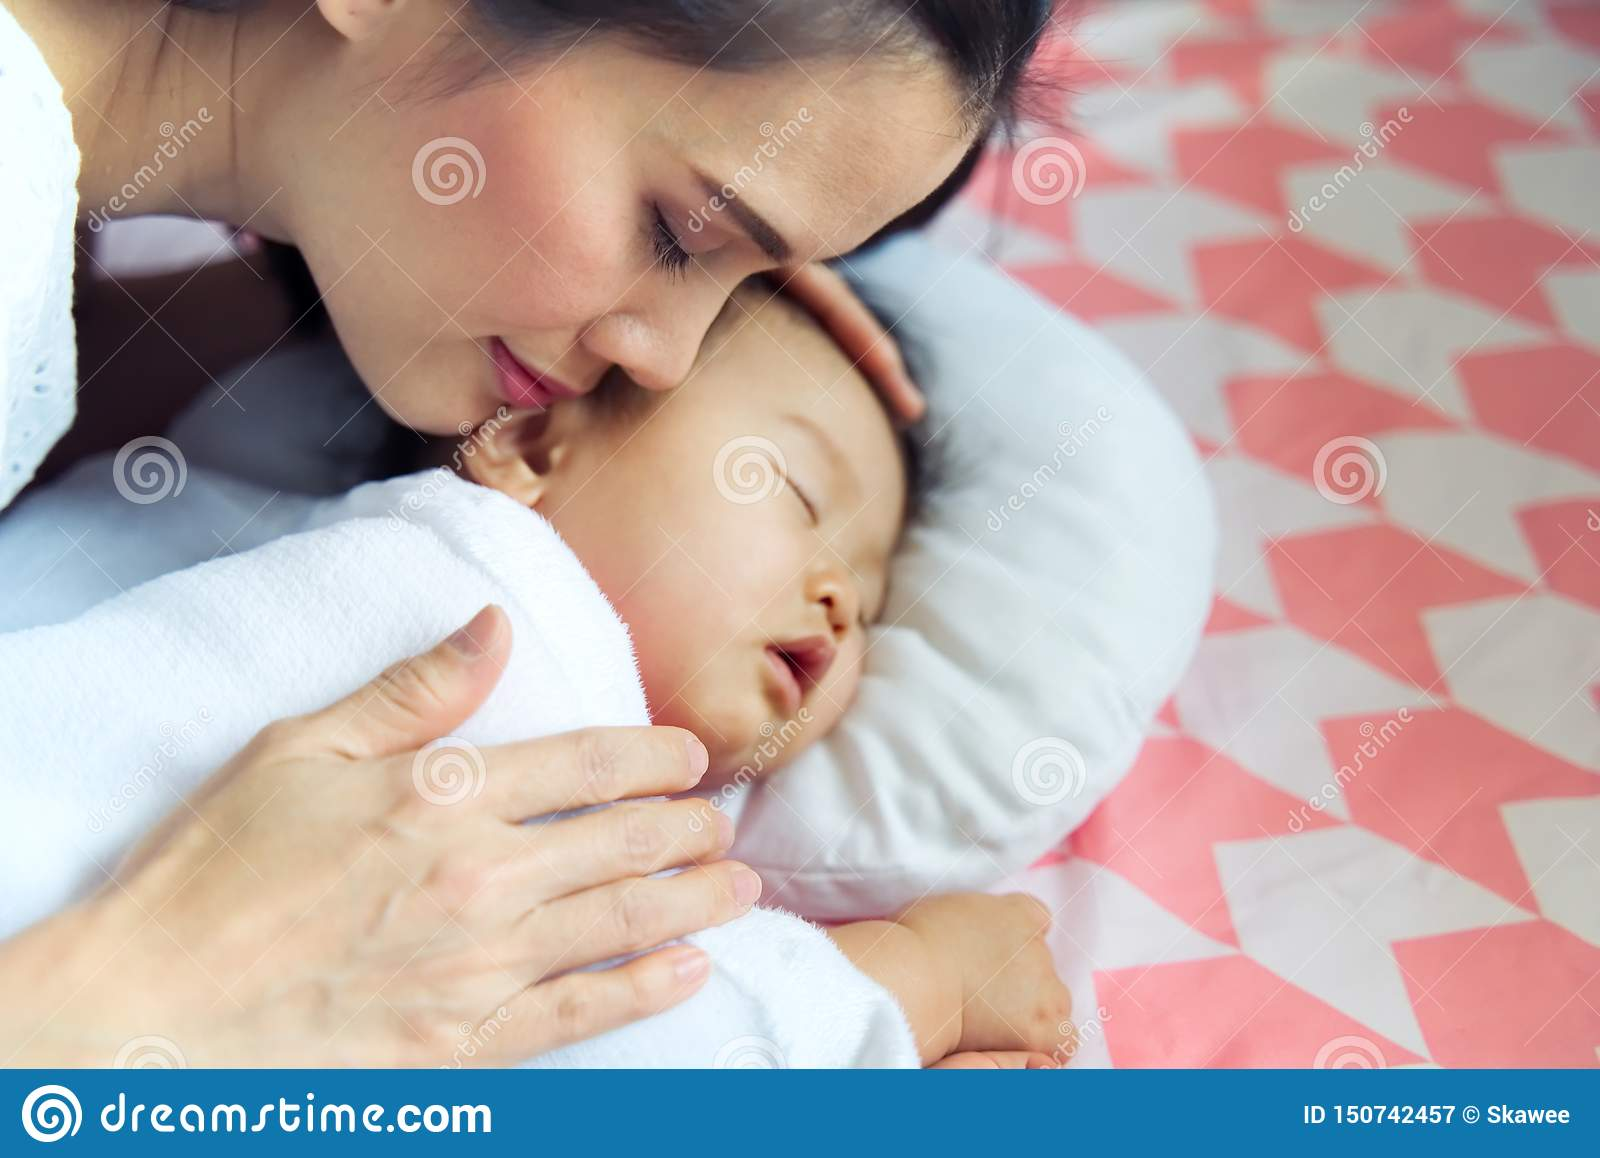 Young pretty Asian mother hugging her sleeping cute baby on the bed. The mother closing her eyes when touching her child softly